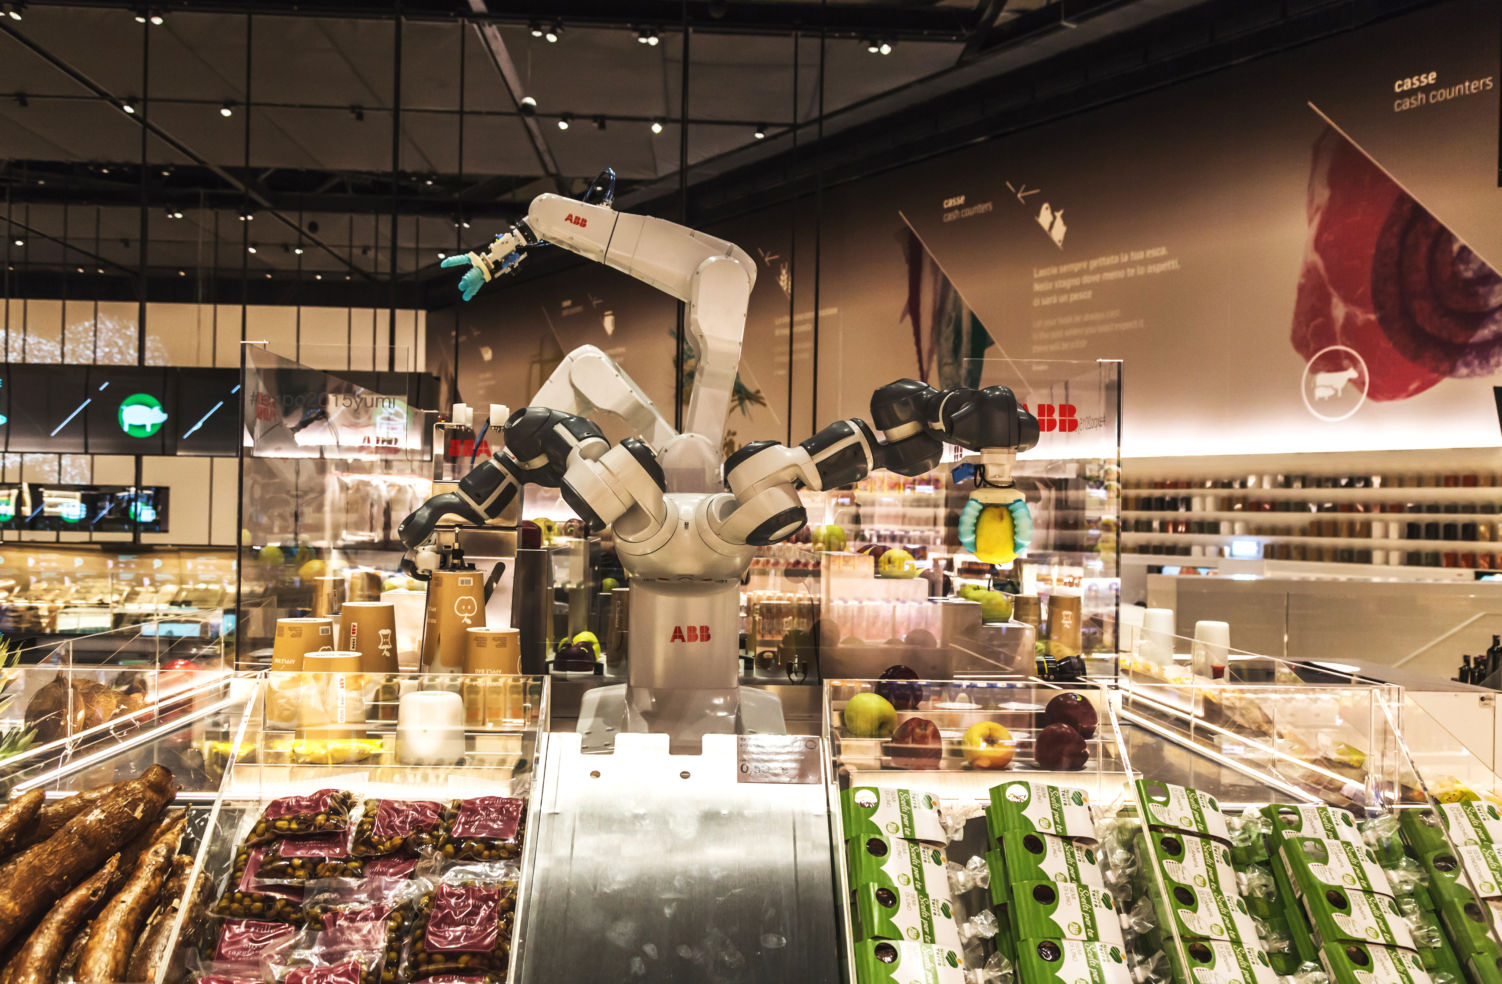 Robotic arms inside a futuristic supermarket Milan Expo 2015